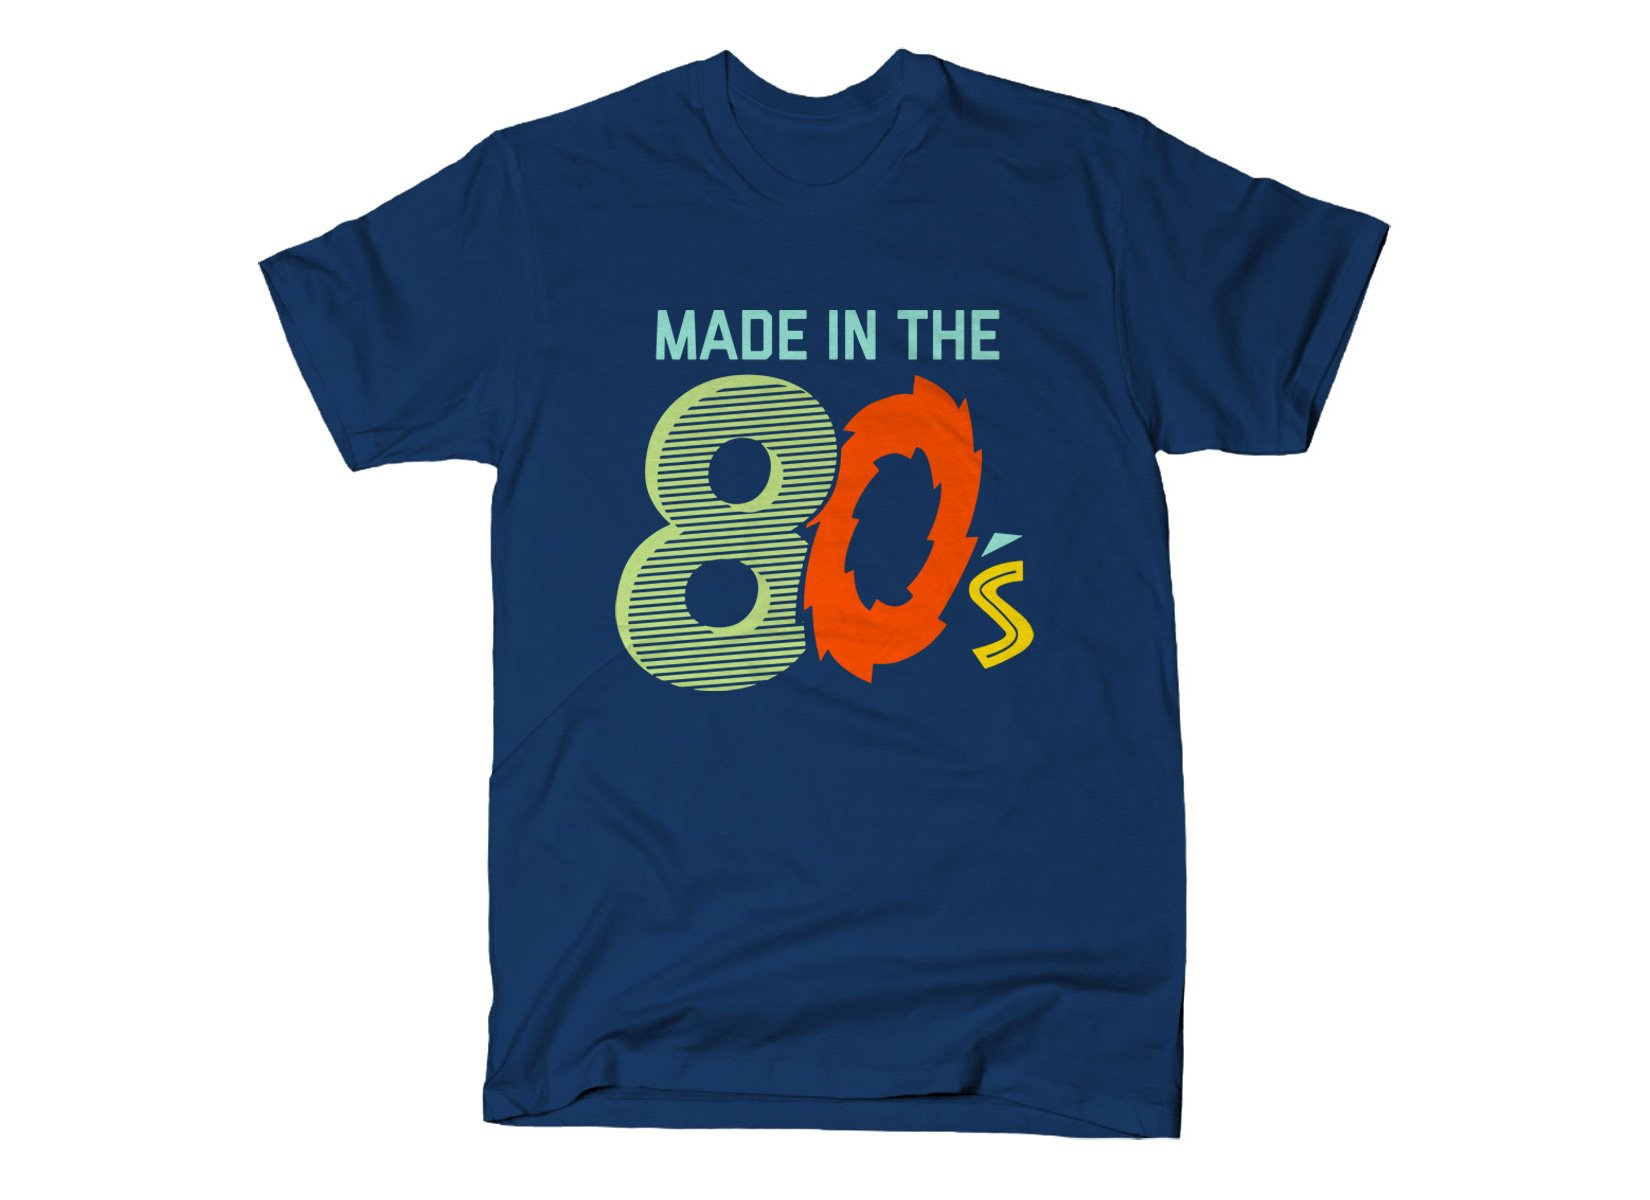 Made In The 80's on Mens T-Shirt